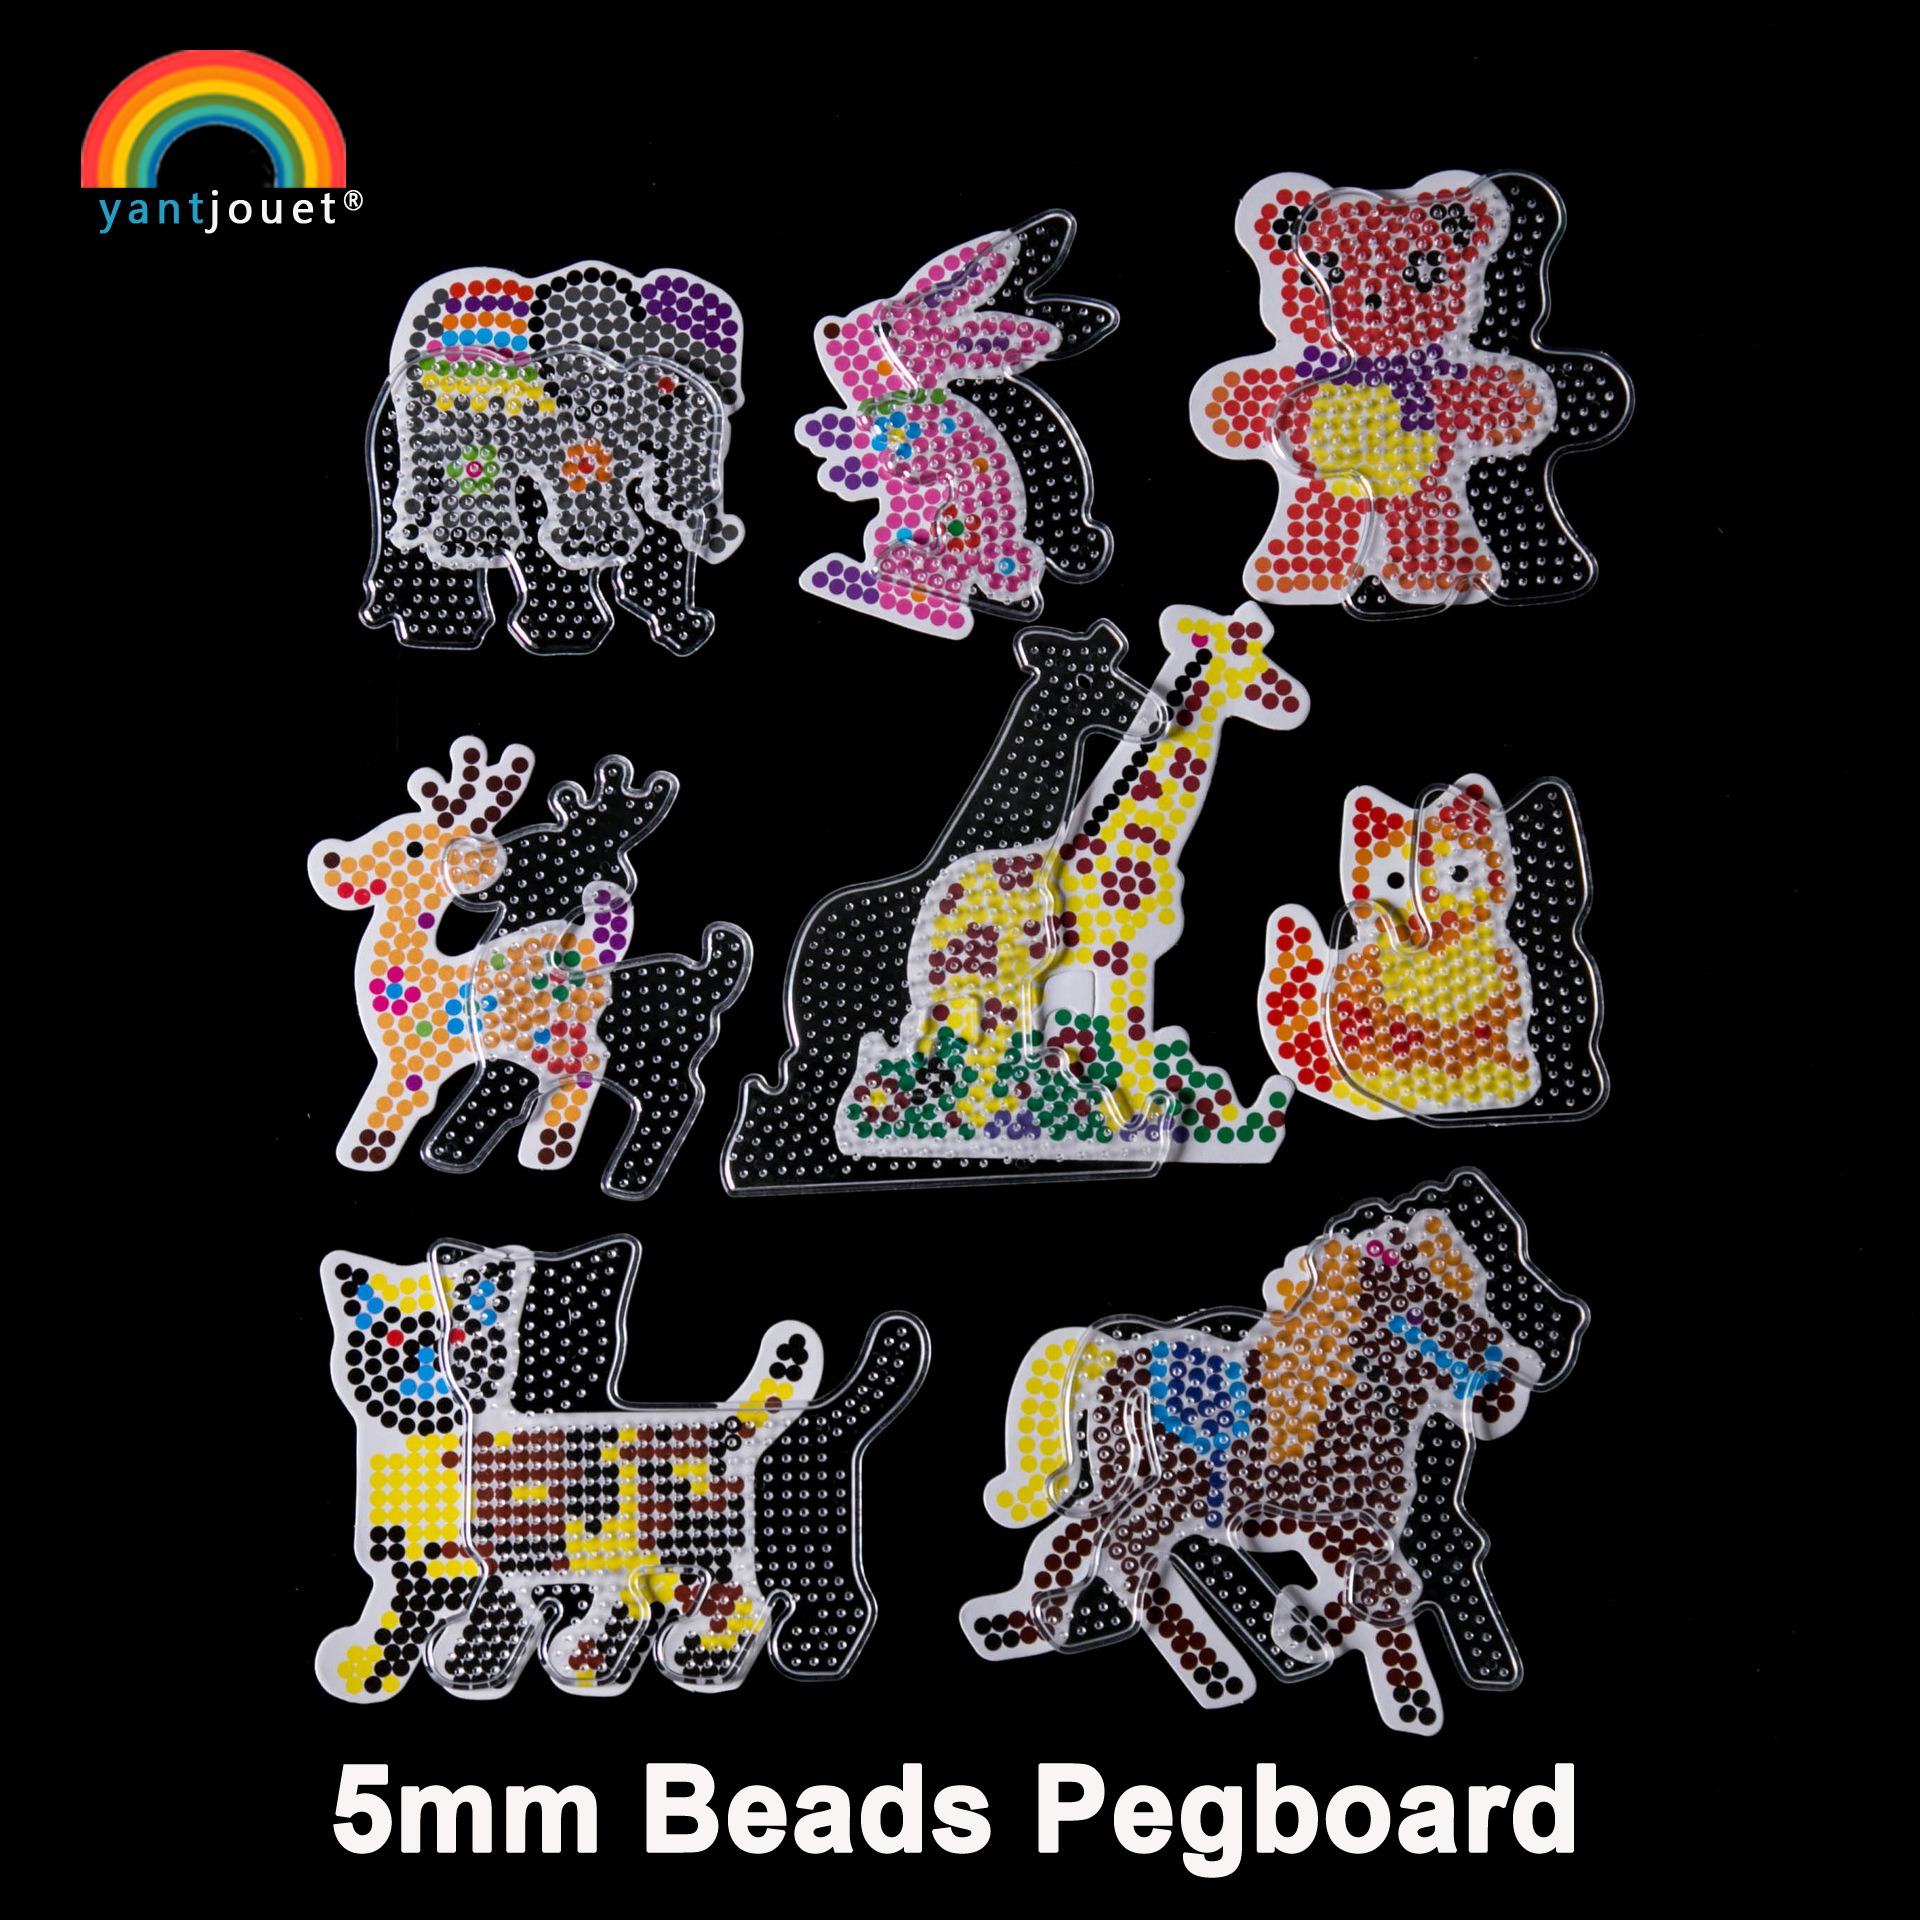 Yant Jouet 5mm Hama Beads Pegboard Whale Sailboat Transparent Template Board DIY Figure Material Board Perler Beads For Children